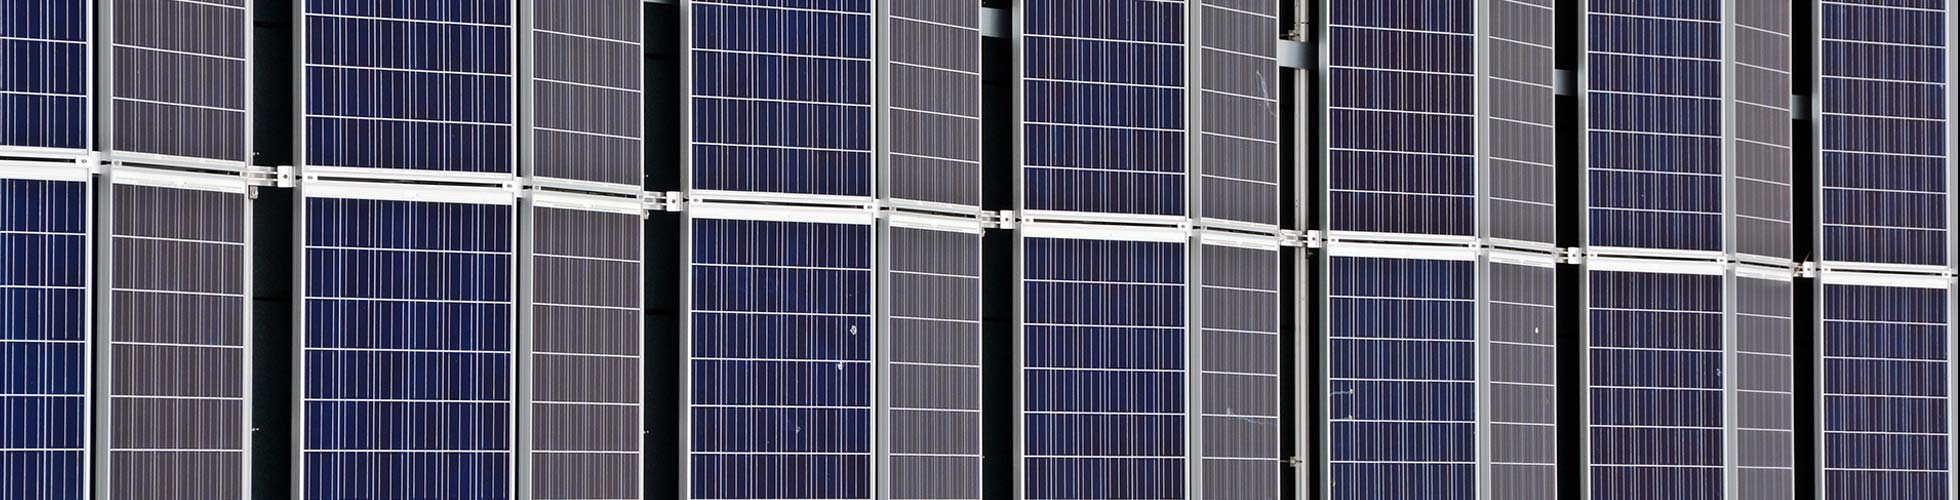 Solar Panels Linked To Net Metering